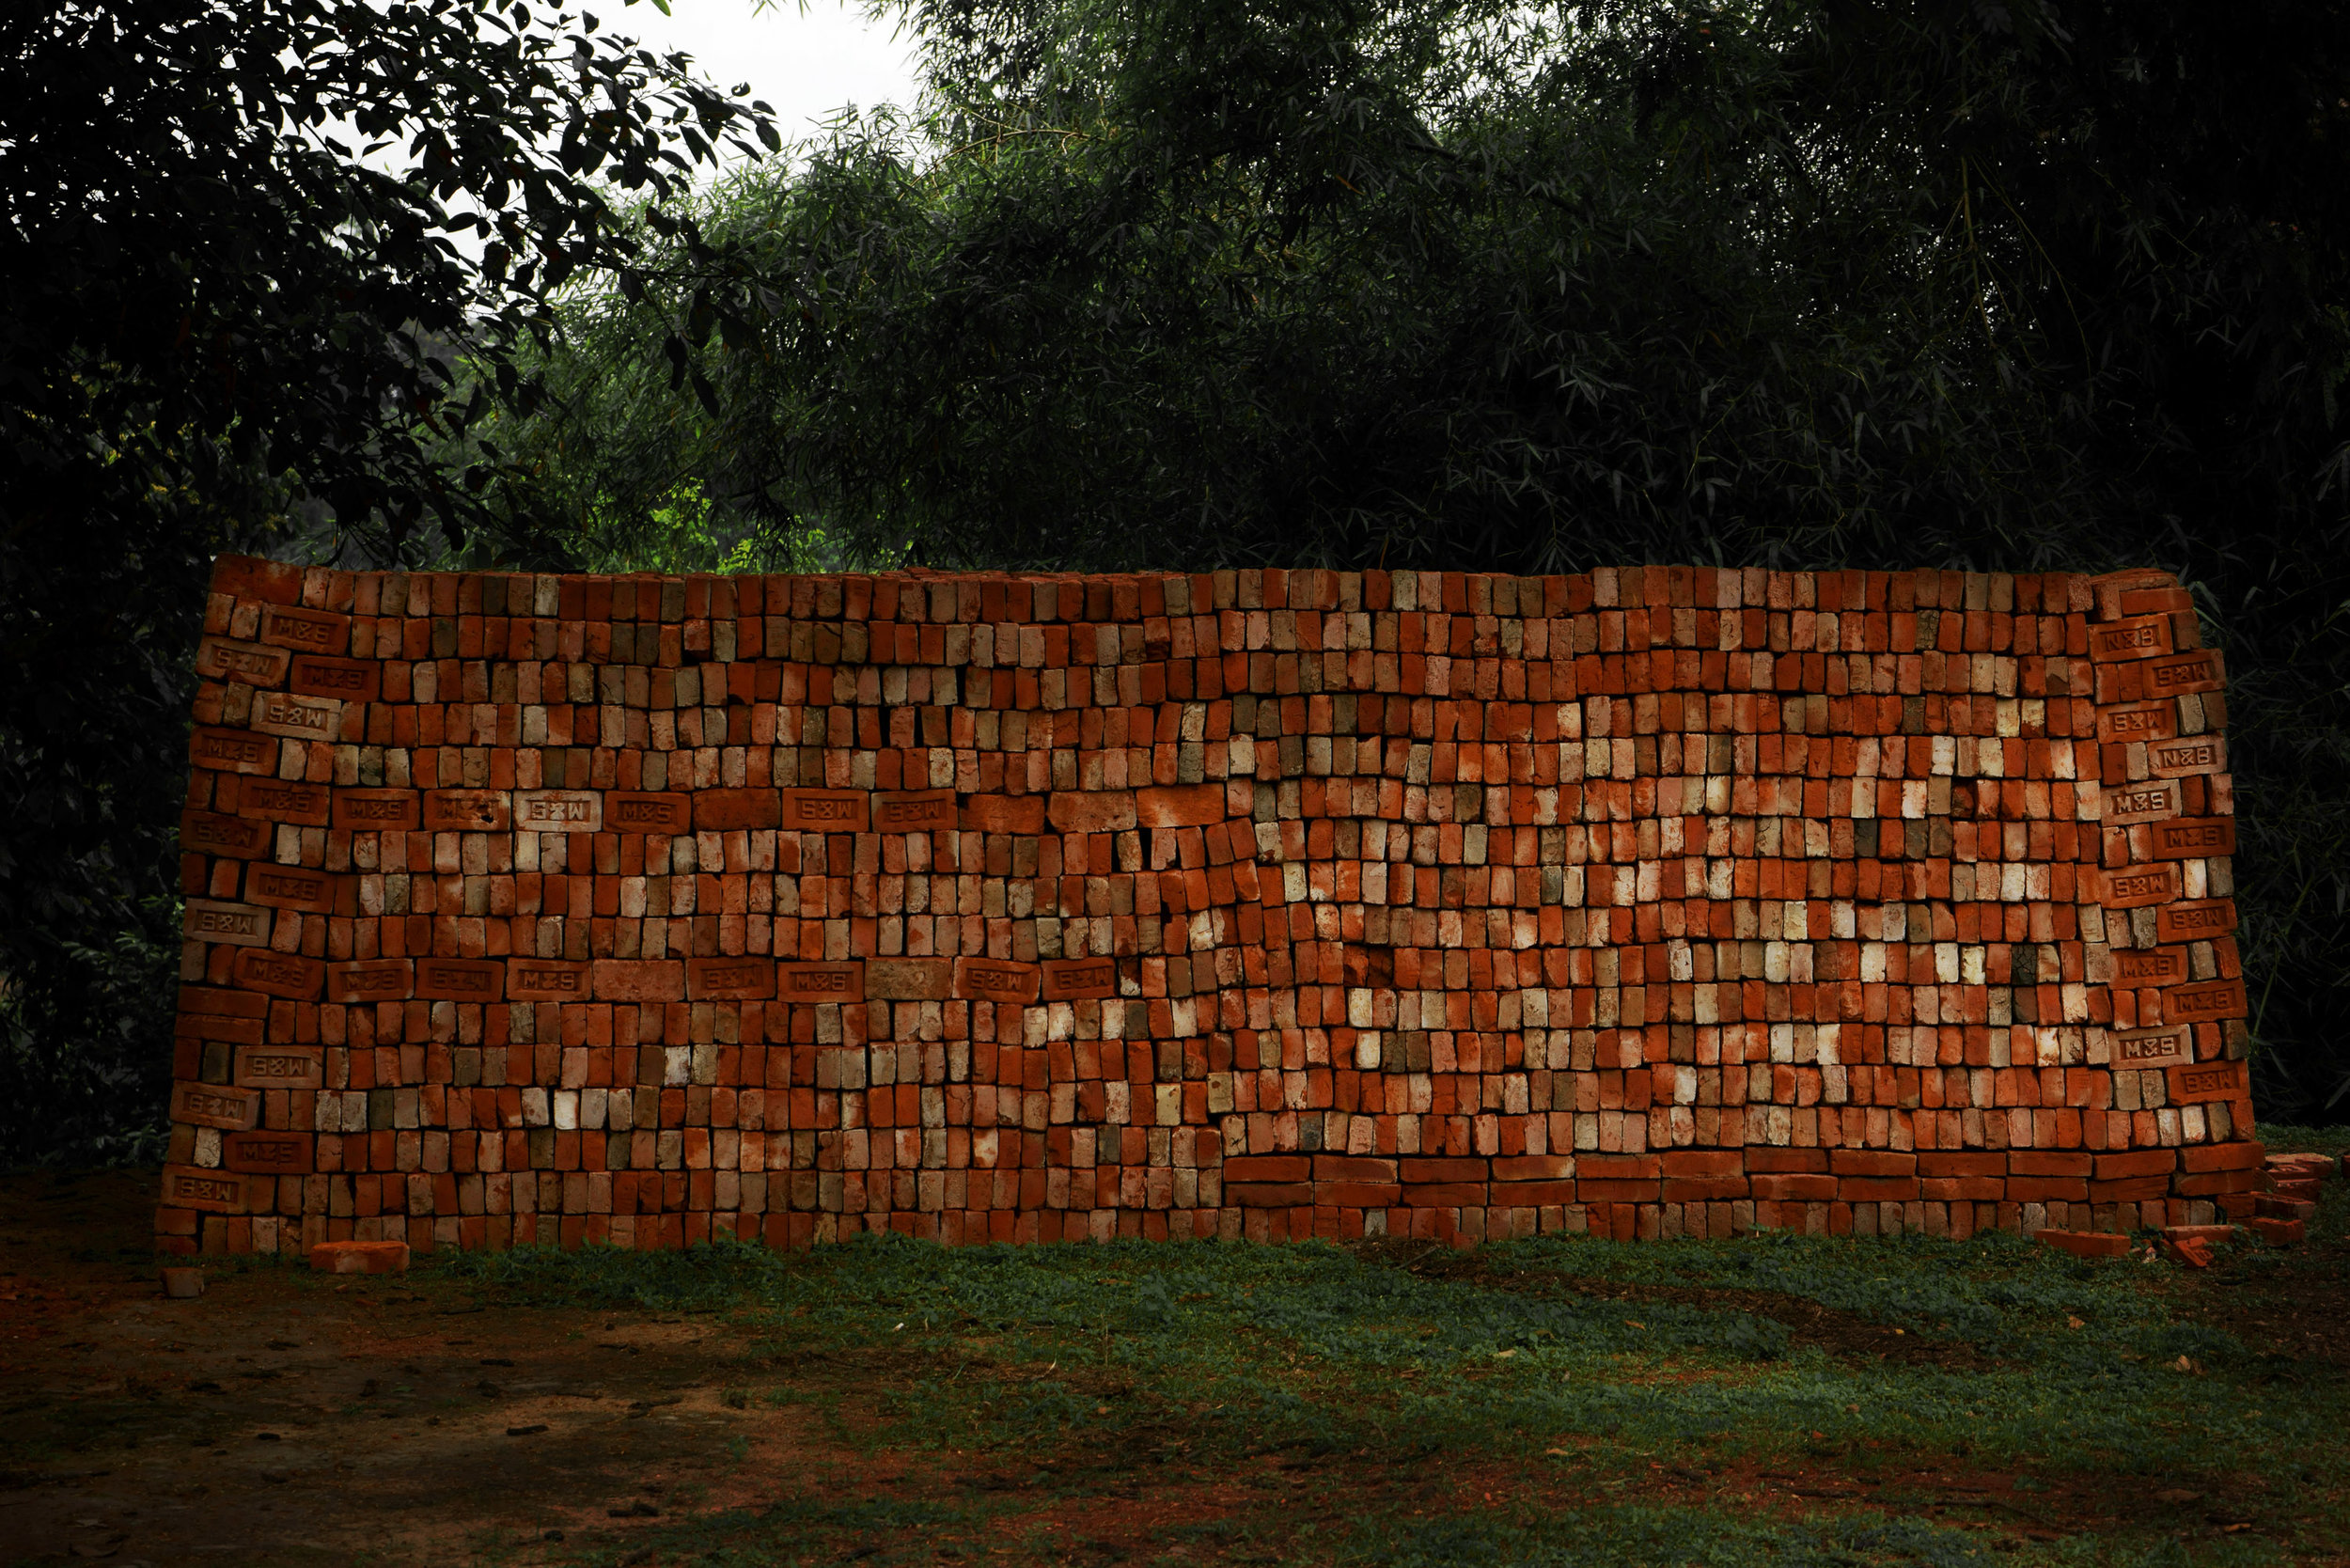 Shen Wei,  Brick Wall,  C-print (Edition of 5 , 2 AP), 2015 (detail)